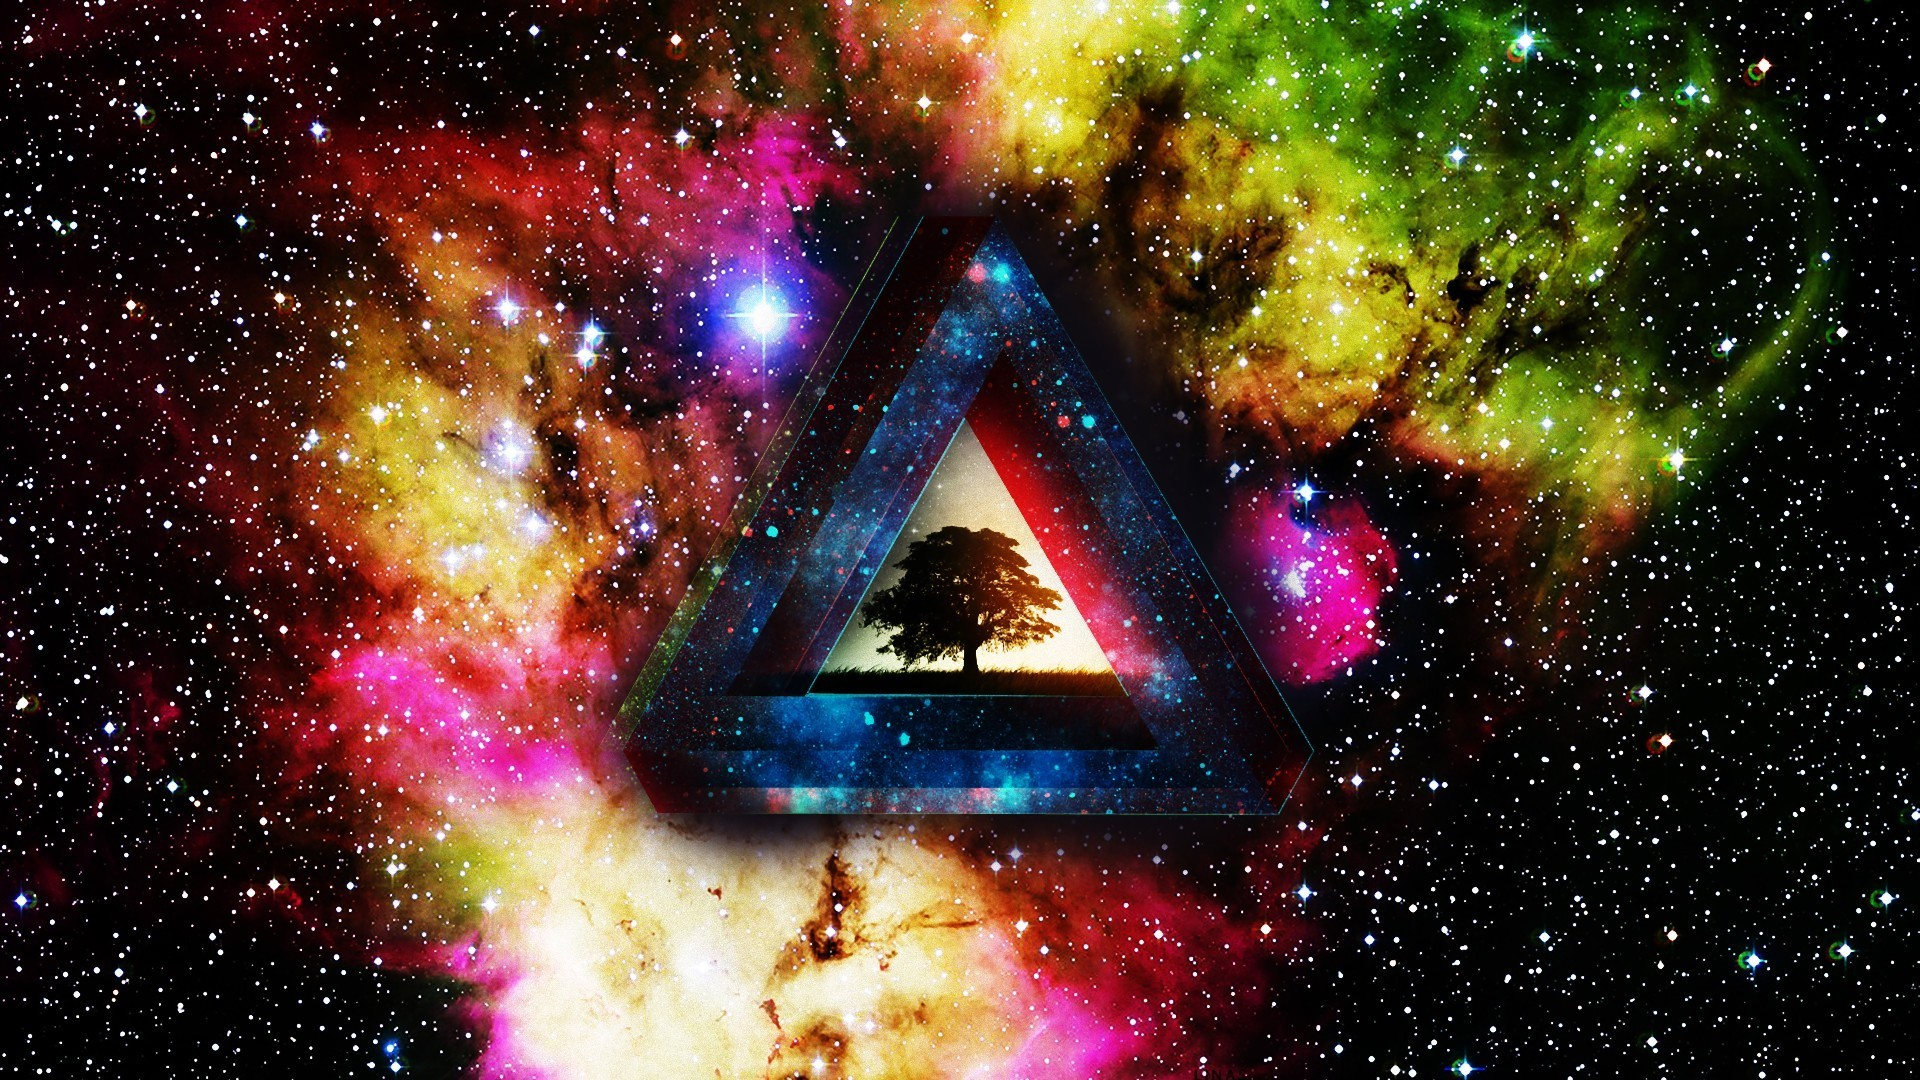 Trippy Illuminati Wallpaper (58+ images)